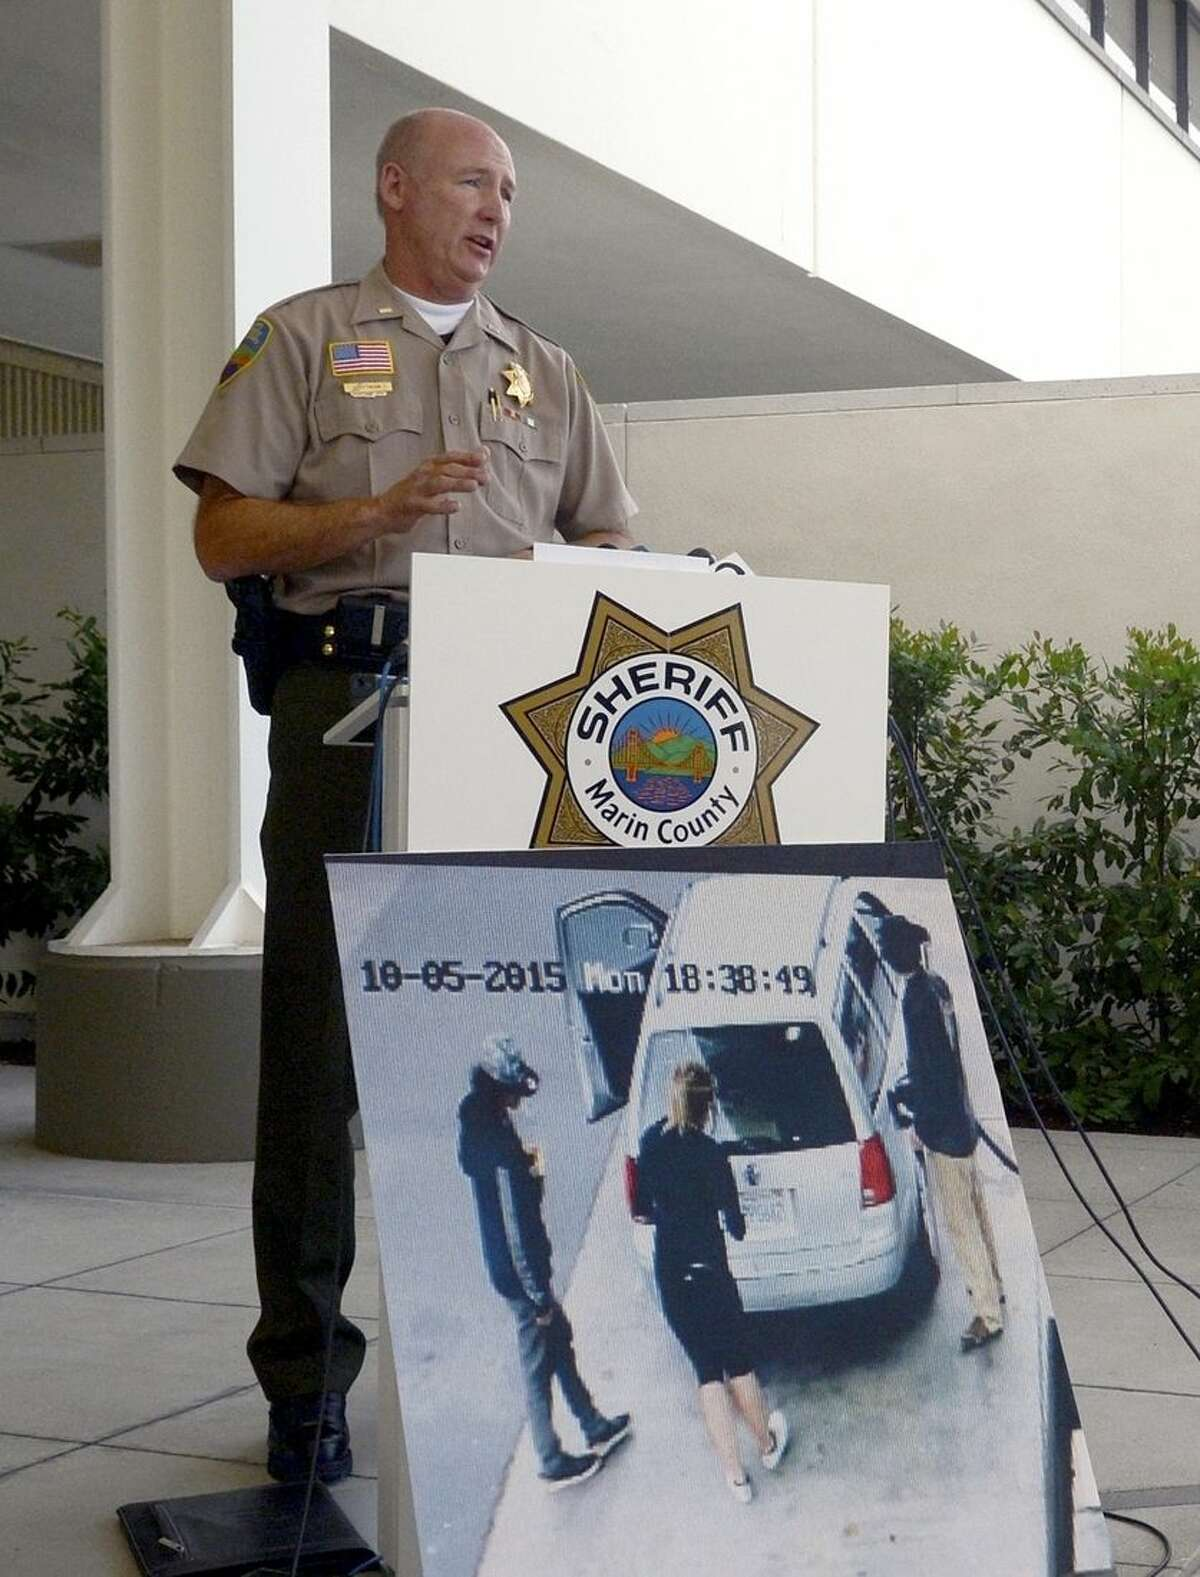 Lt. Doug Pittman of the Marin County Sheriff's office speaks during a news conference regarding the death of 67-year-old yoga teacher Steve Carter, in San Rafael, Calif., Wednesday, Oct. 7, 2015. Three people have been arrested in the killing of a California yoga teacher who was shot on a trail in what appeared to be a random crime while walking his dog, authorities said Wednesday. The three people taken into custody in Portland, Oregon were described as drifters and a motive was unknown. The photograph in the foreground, from a gas station surveillance camera, shows two men and one woman around the victim's car in Pt. Reyes Station, Calif. (Alan Dep/Marin Independent Journal via AP)